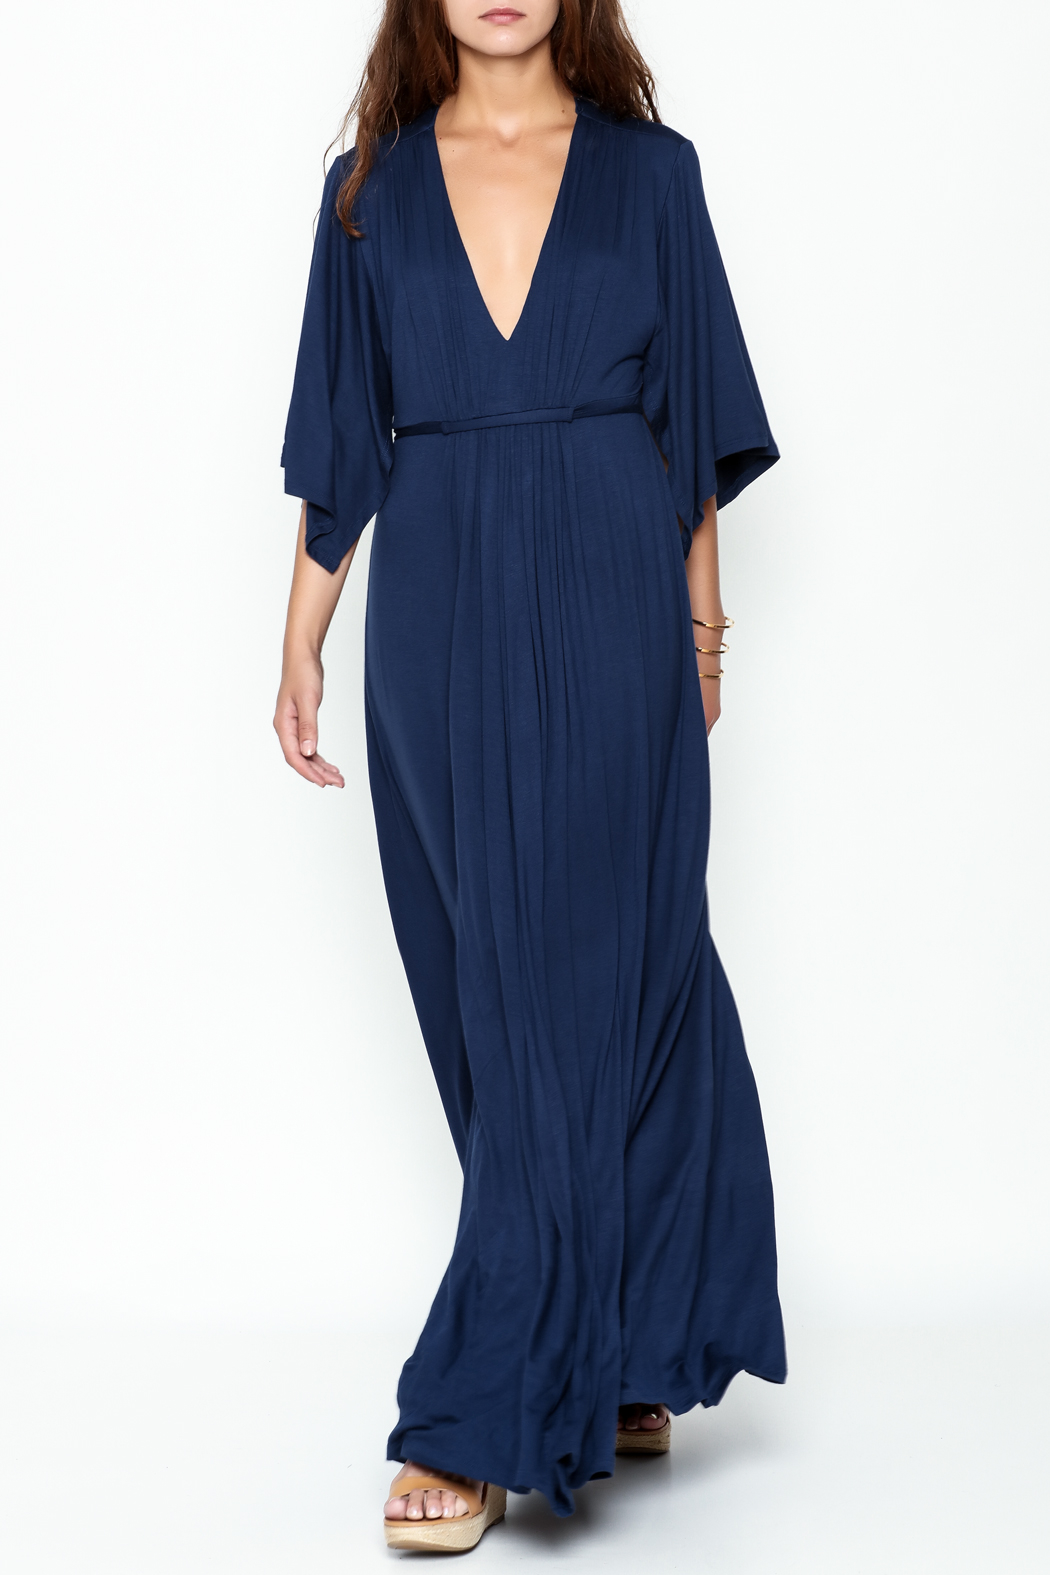 Lila Ila Mackenzie Maxi Dress - Main Image